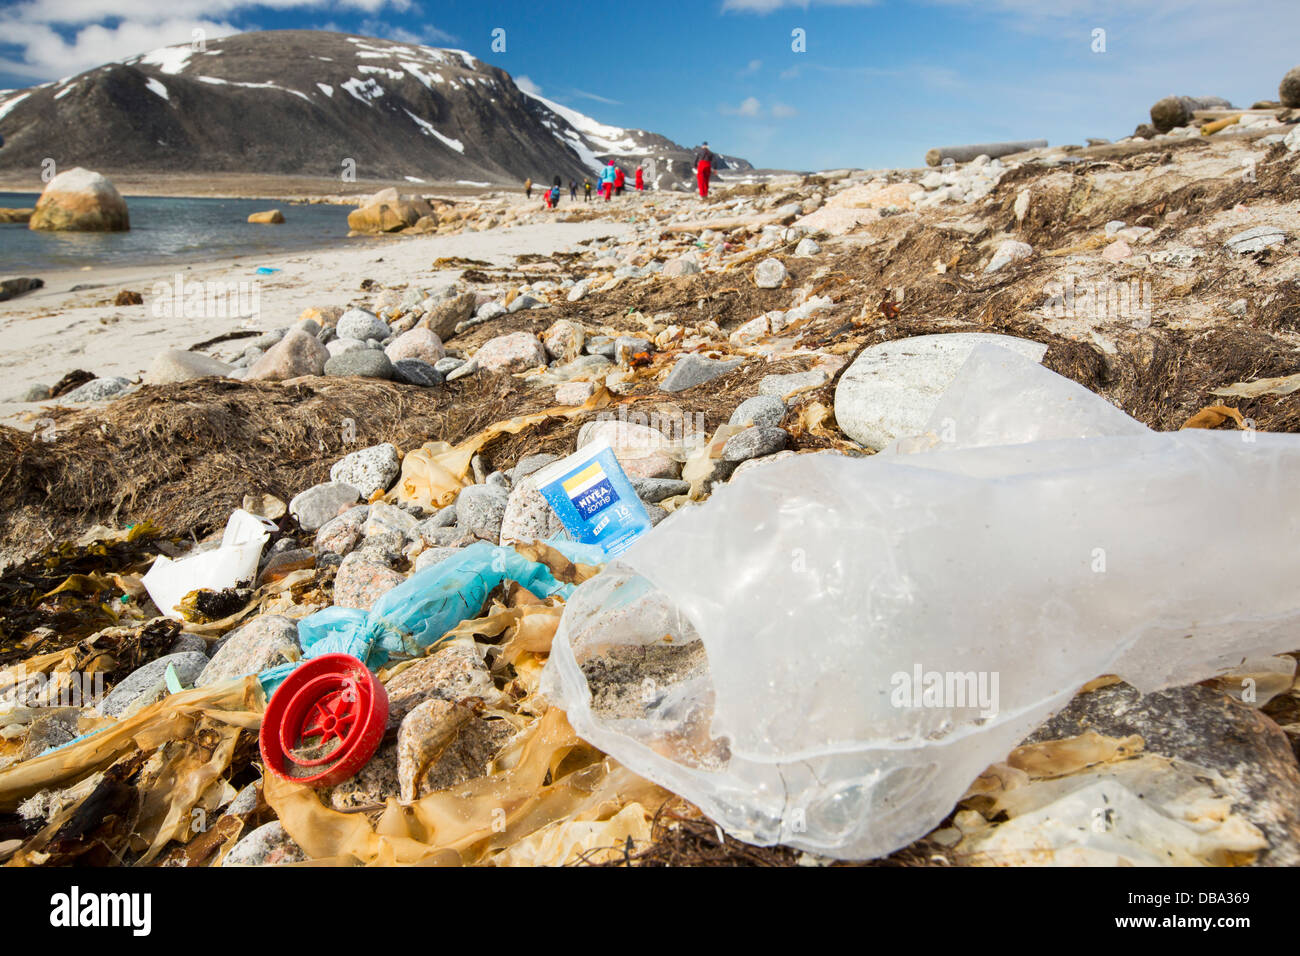 Plastic rubbish on a remote beach in Northern Svalbard, only about 600 miles from the North Pole. - Stock Image